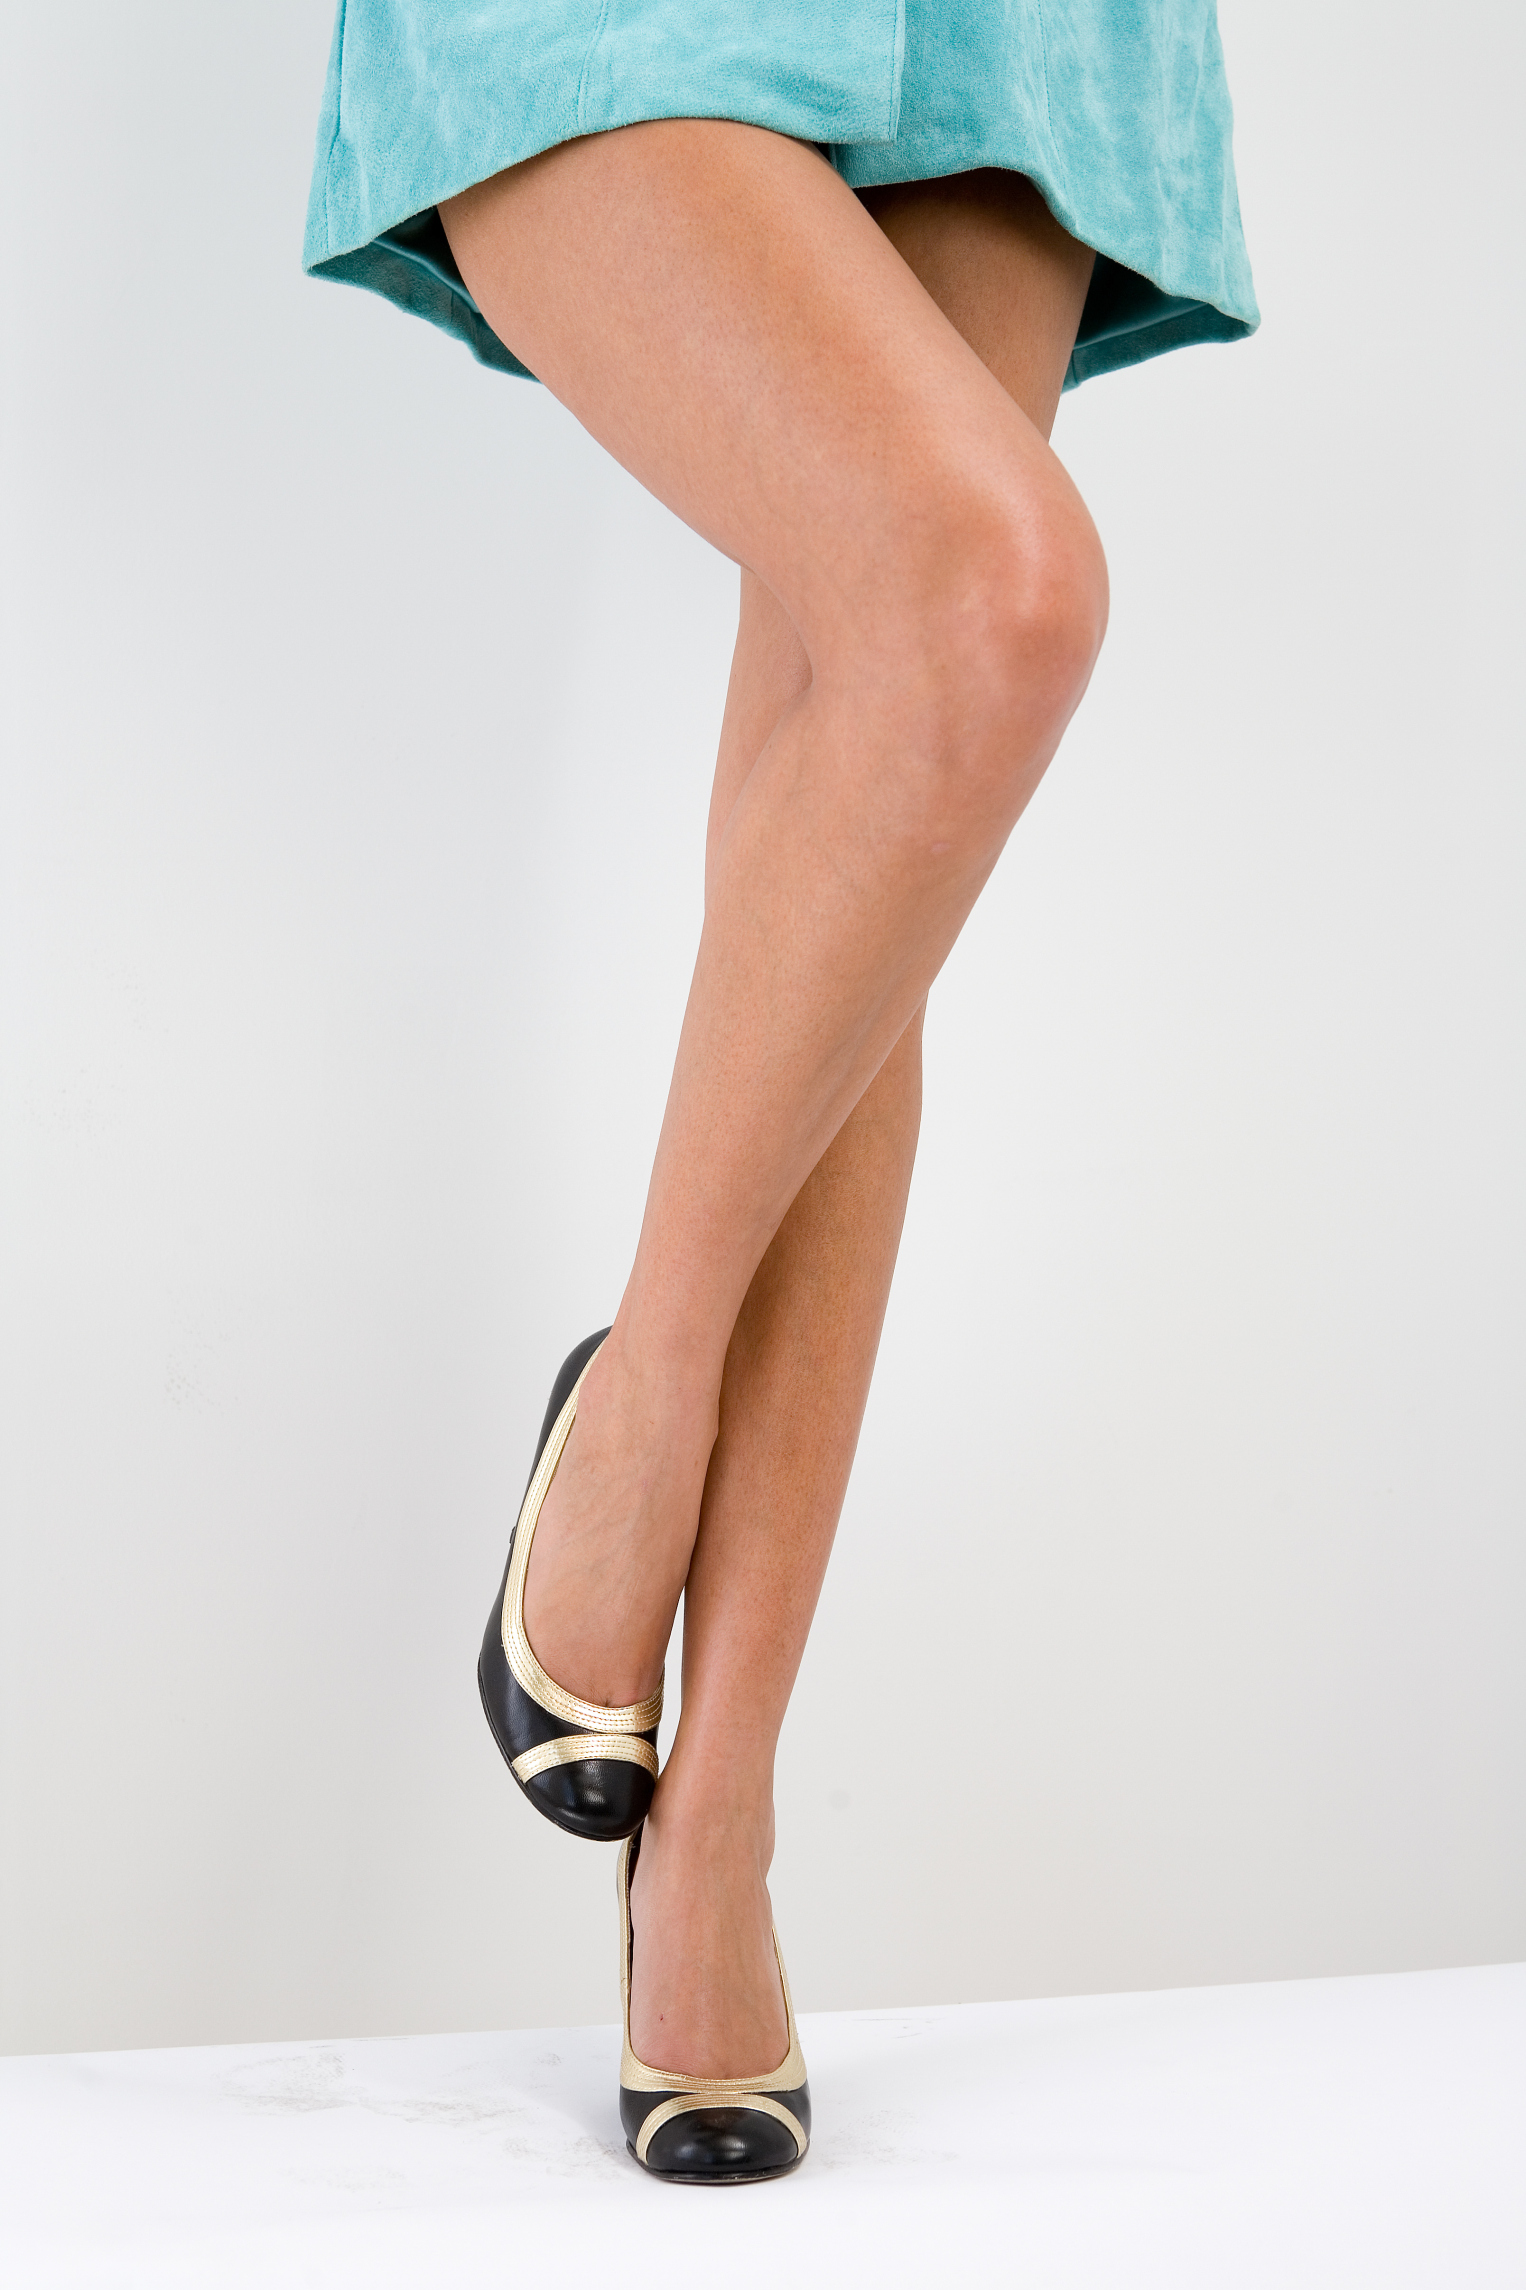 laser hair removal | Boston